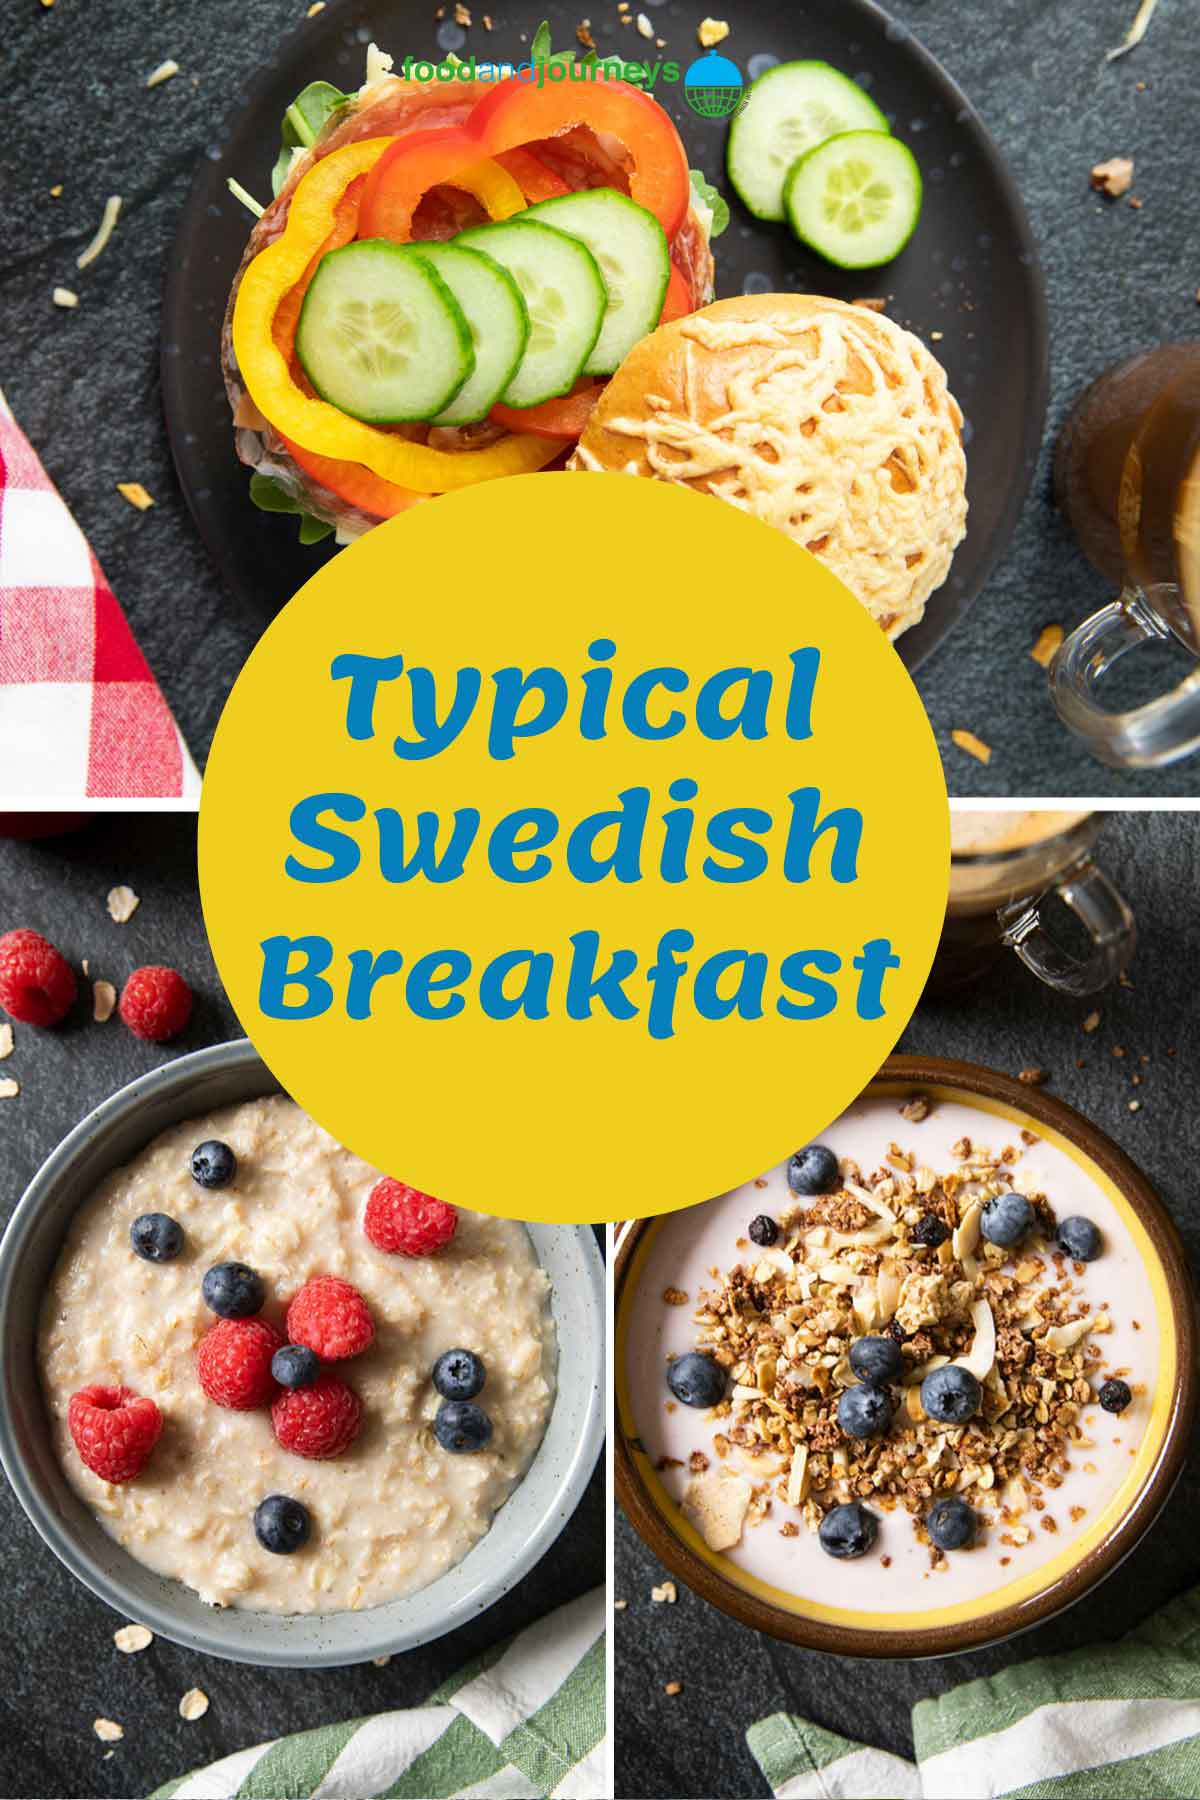 Cover for Guide for Swedish Breakfast, showing a collage of typical Swedish breakfast dishes.